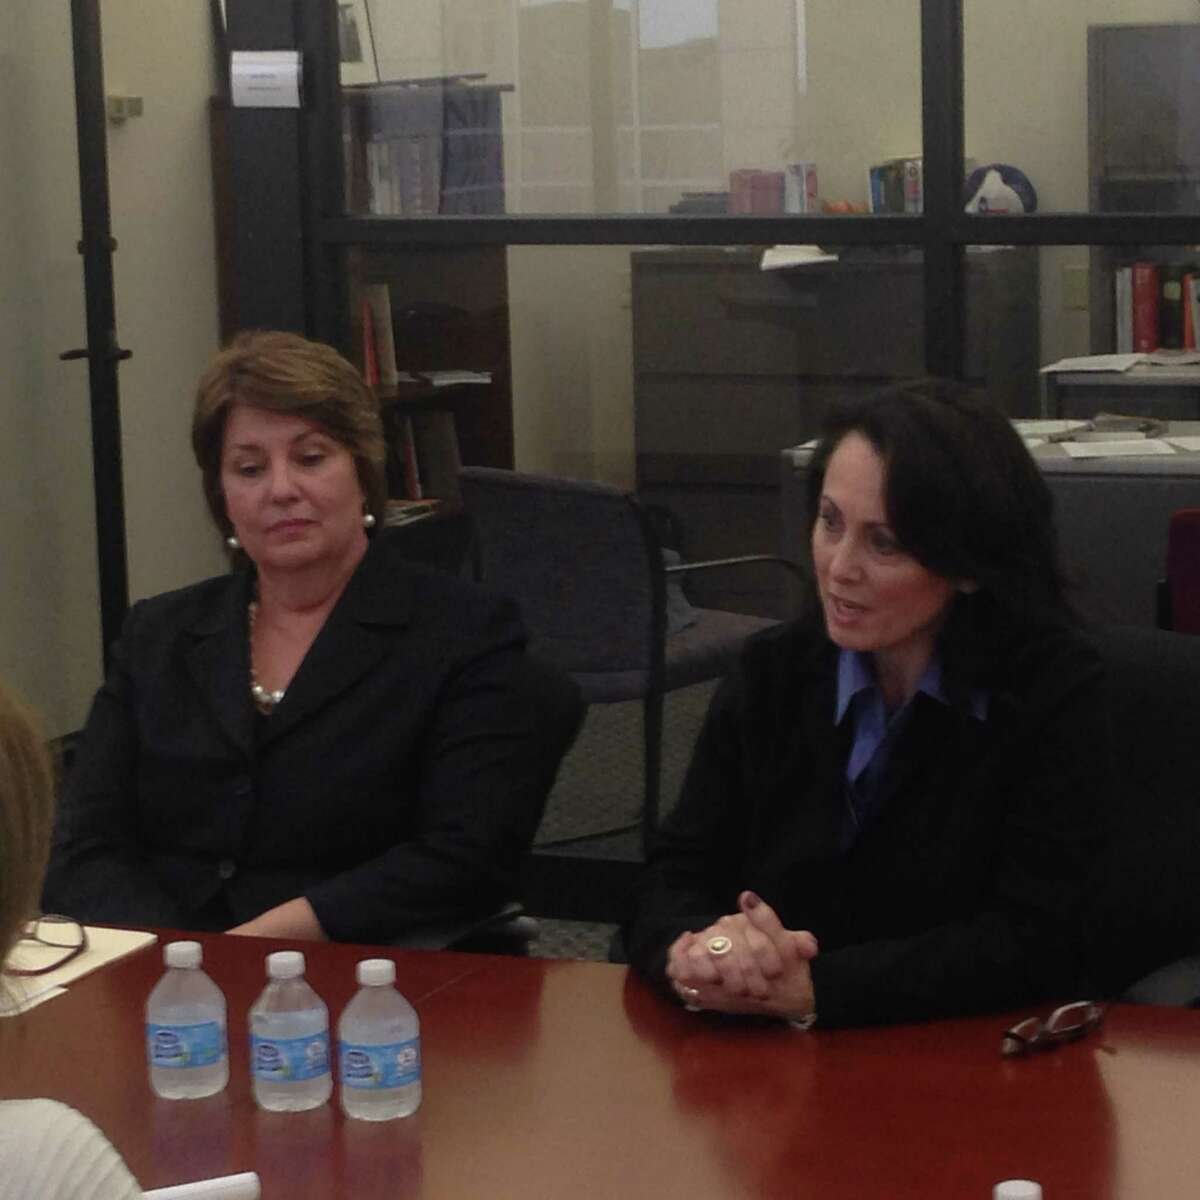 Candidates for the 280th Family District Court, Democrat Barbara Stalder, and Republican Lynn Bradshaw-Hull, the incumbent, meet before the Houston Chronicle editorial board. The editorial board recommends Stalder.